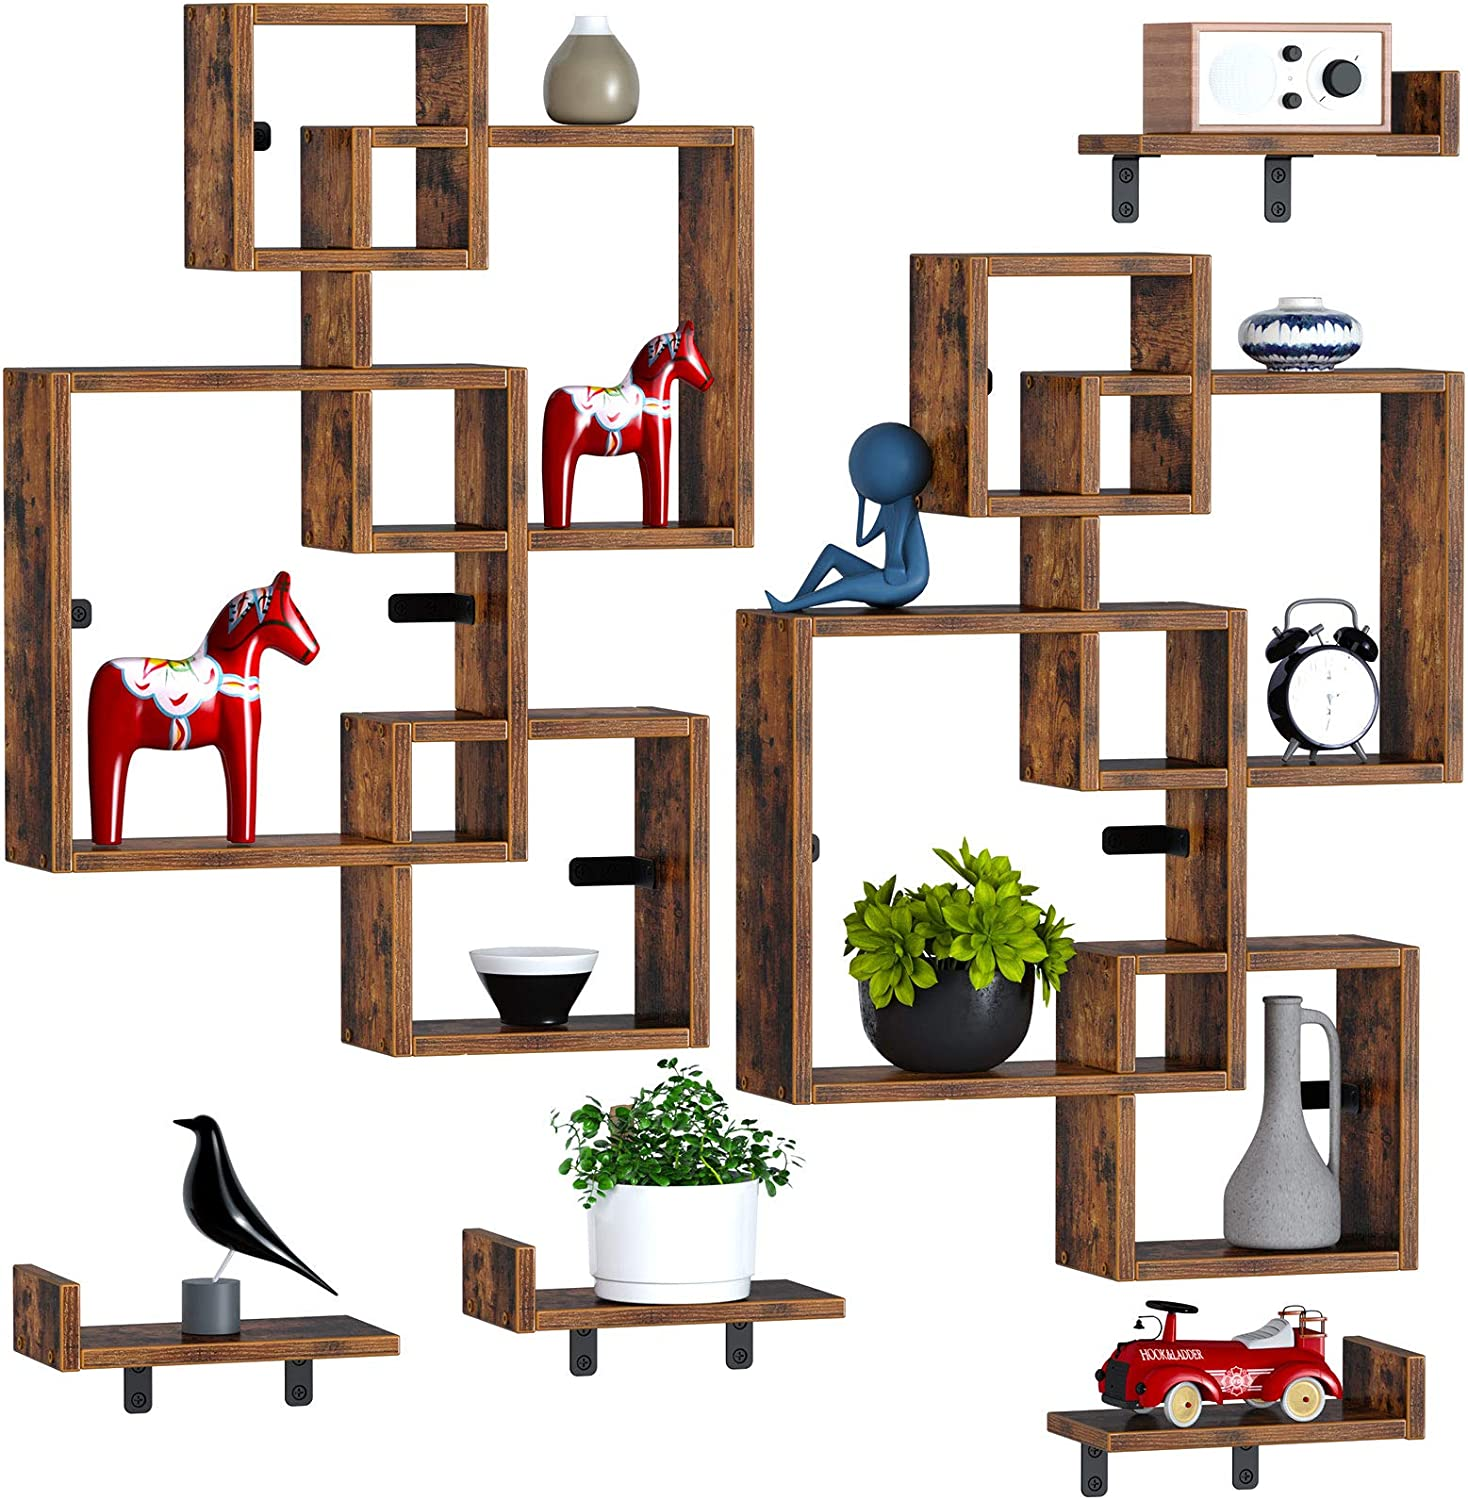 Rolanstar Floating Shelves, Wall Mounted 4 Cube Intersecting Floating Shelf Set for Decor and Storage for Living Room, Bedroom, Home Decor Furniture, Rustic Brown 2 Pack